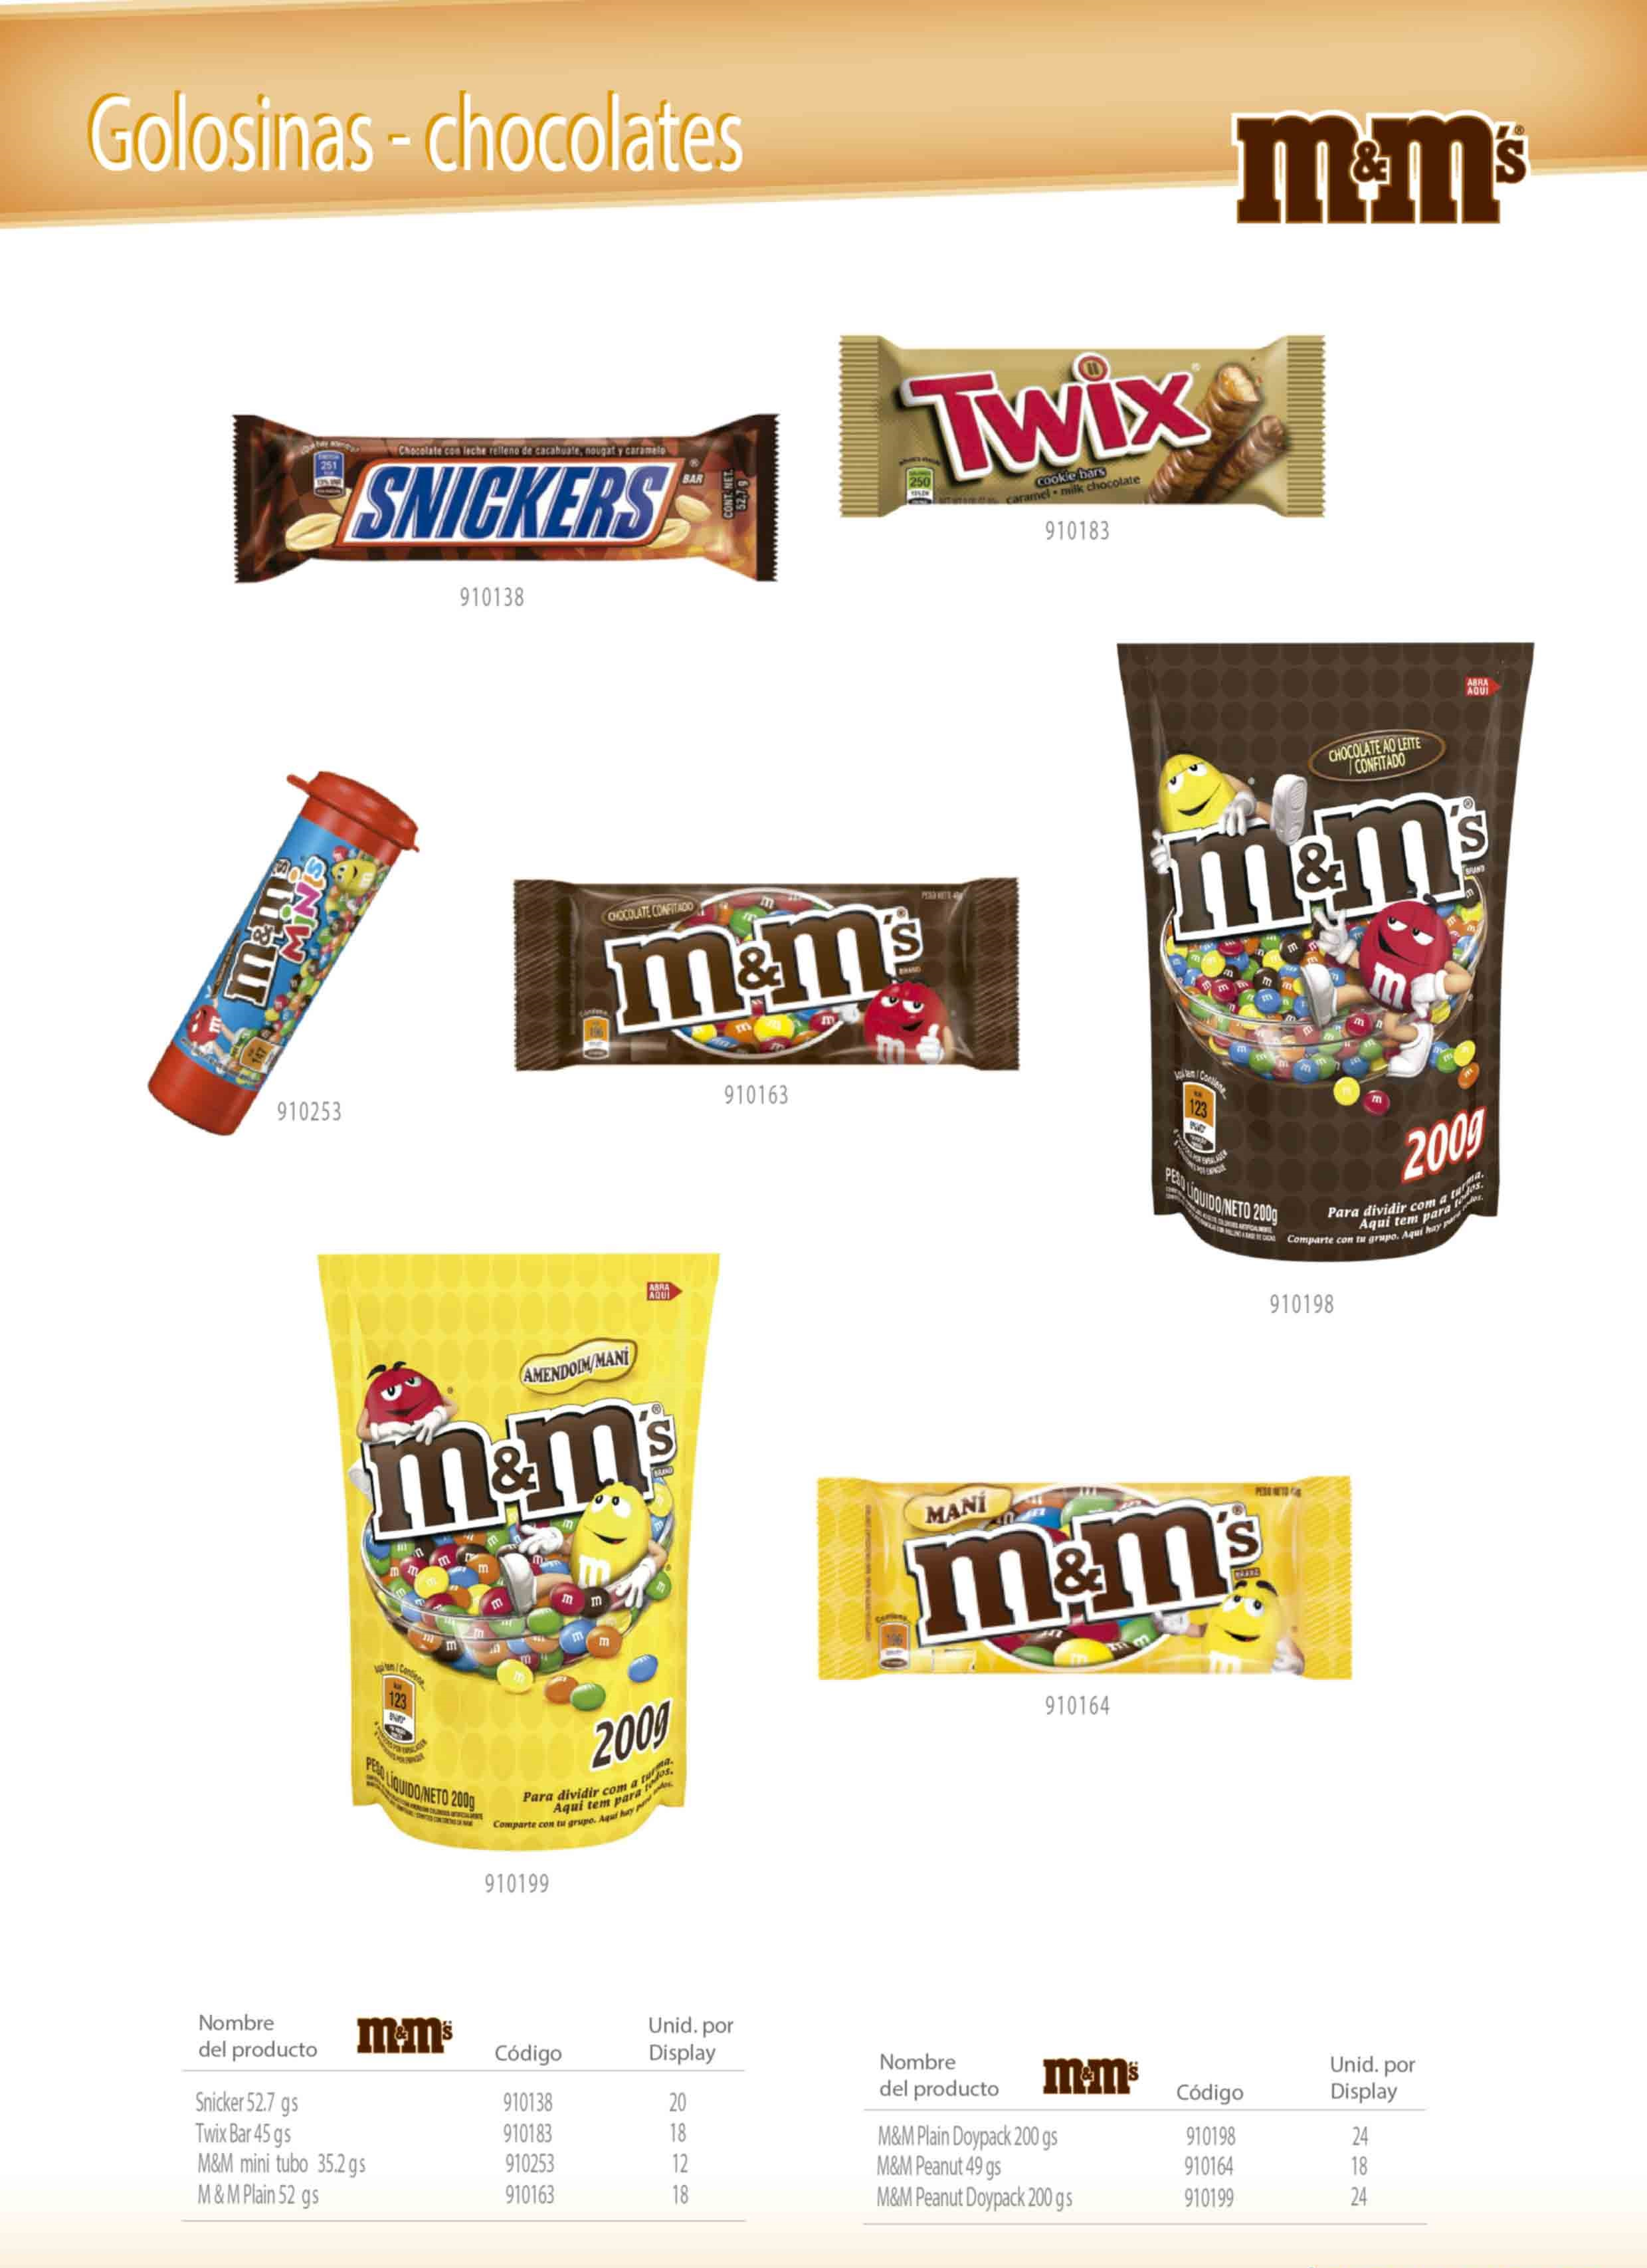 Snickers - Twix Bar - M&M